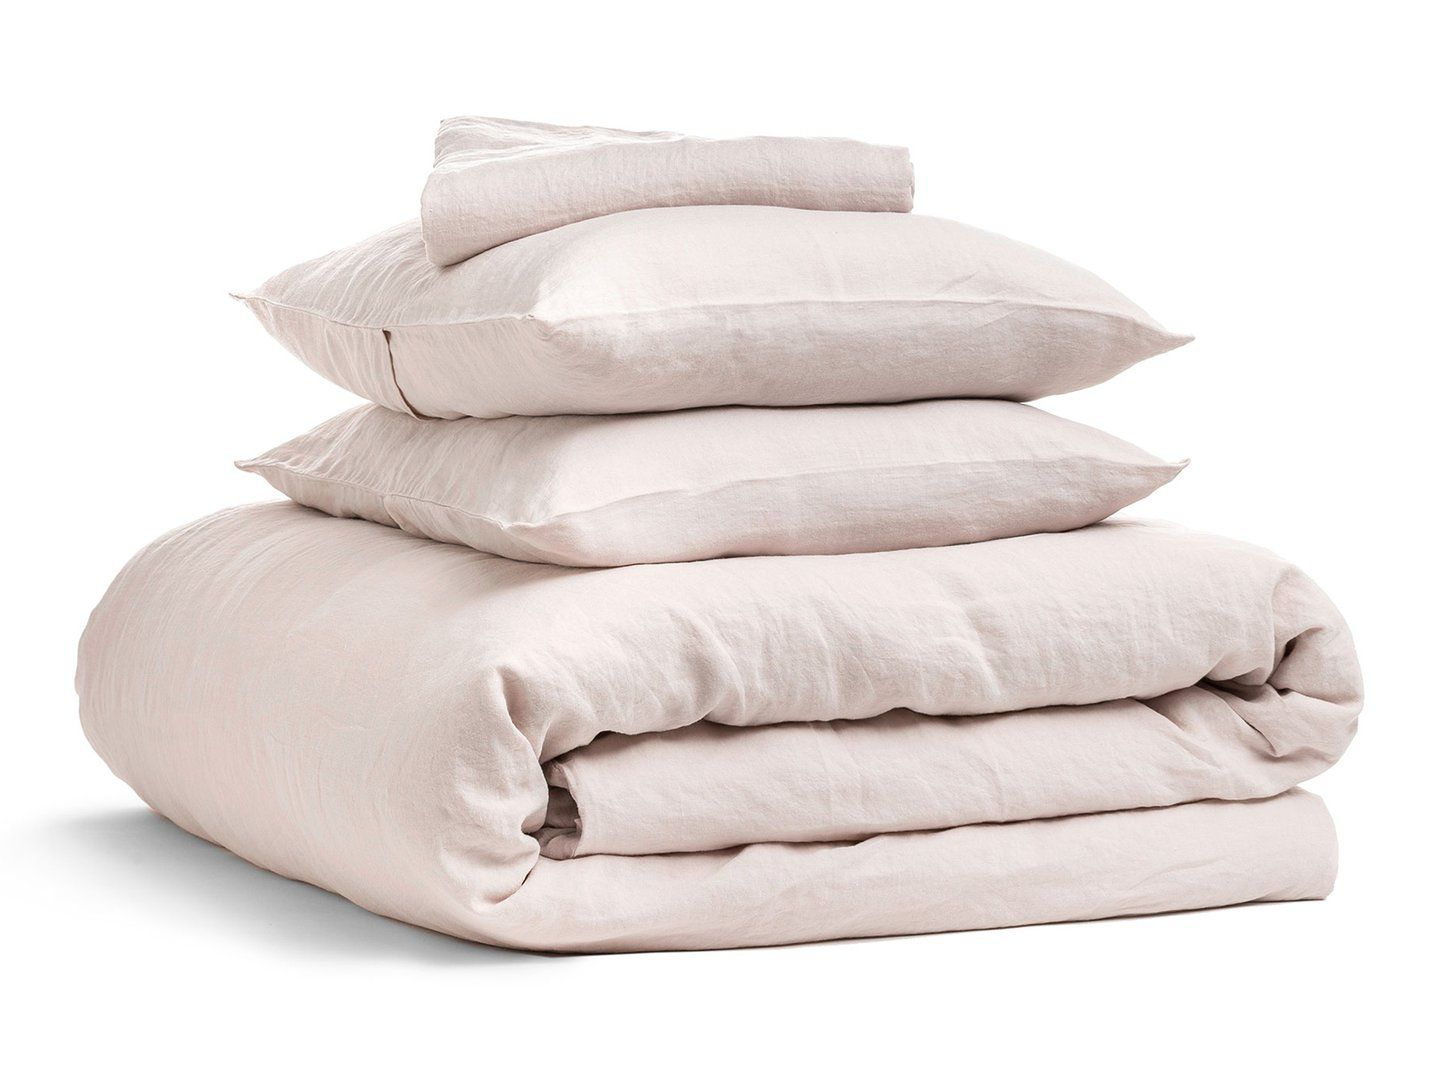 A set of pink linen bedding with two pillows, a top sheet, and a duvet cover.